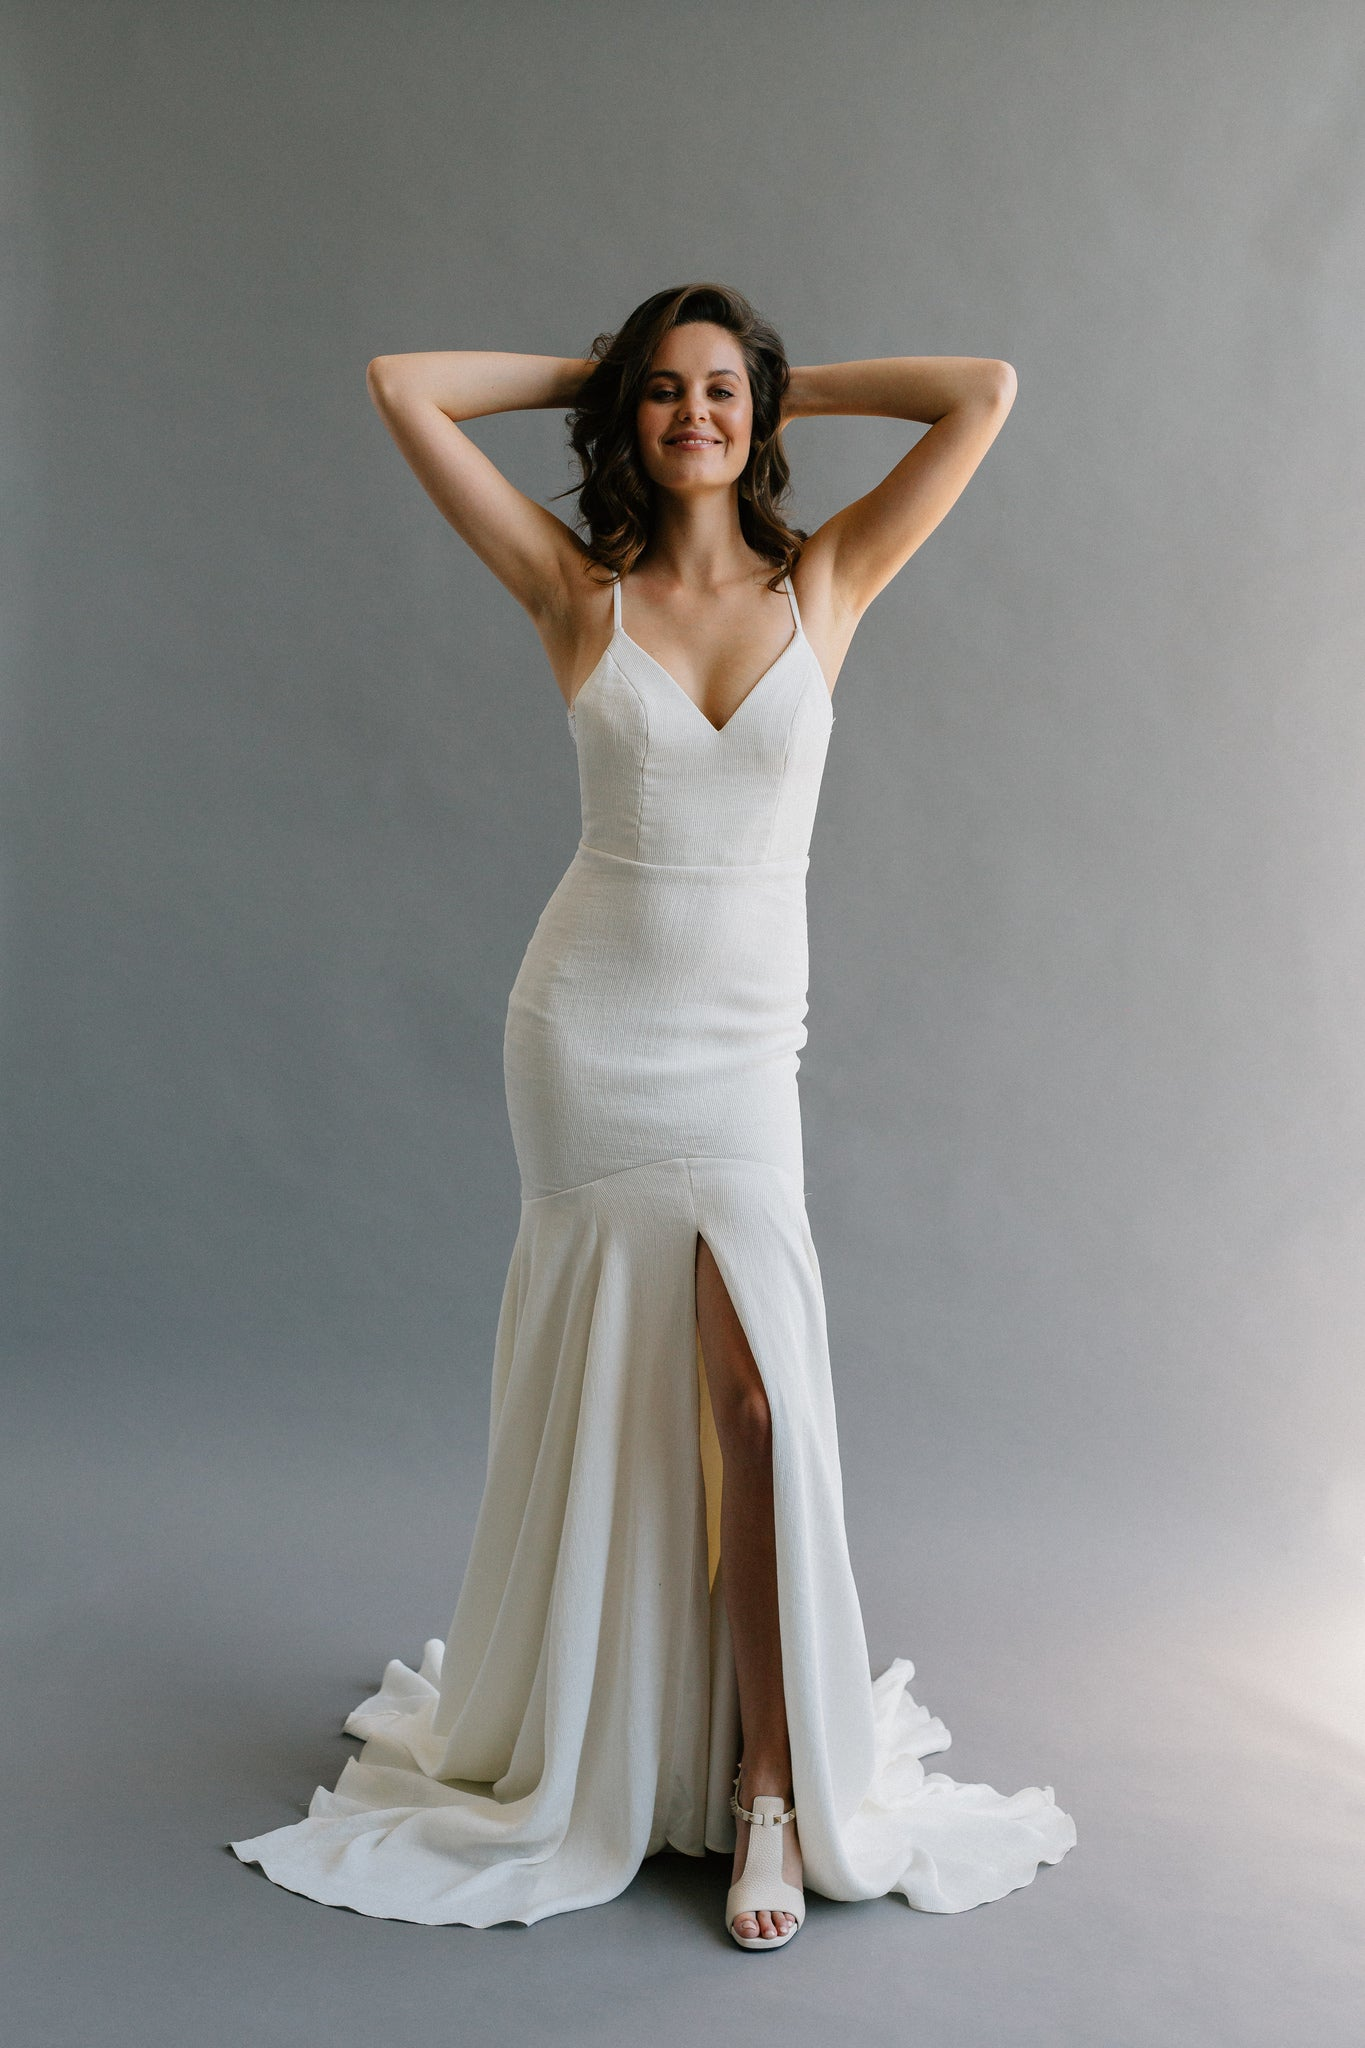 Non-traditional wedding dress made in a textured crepe with a centre slit, lace panels, and a four-point train